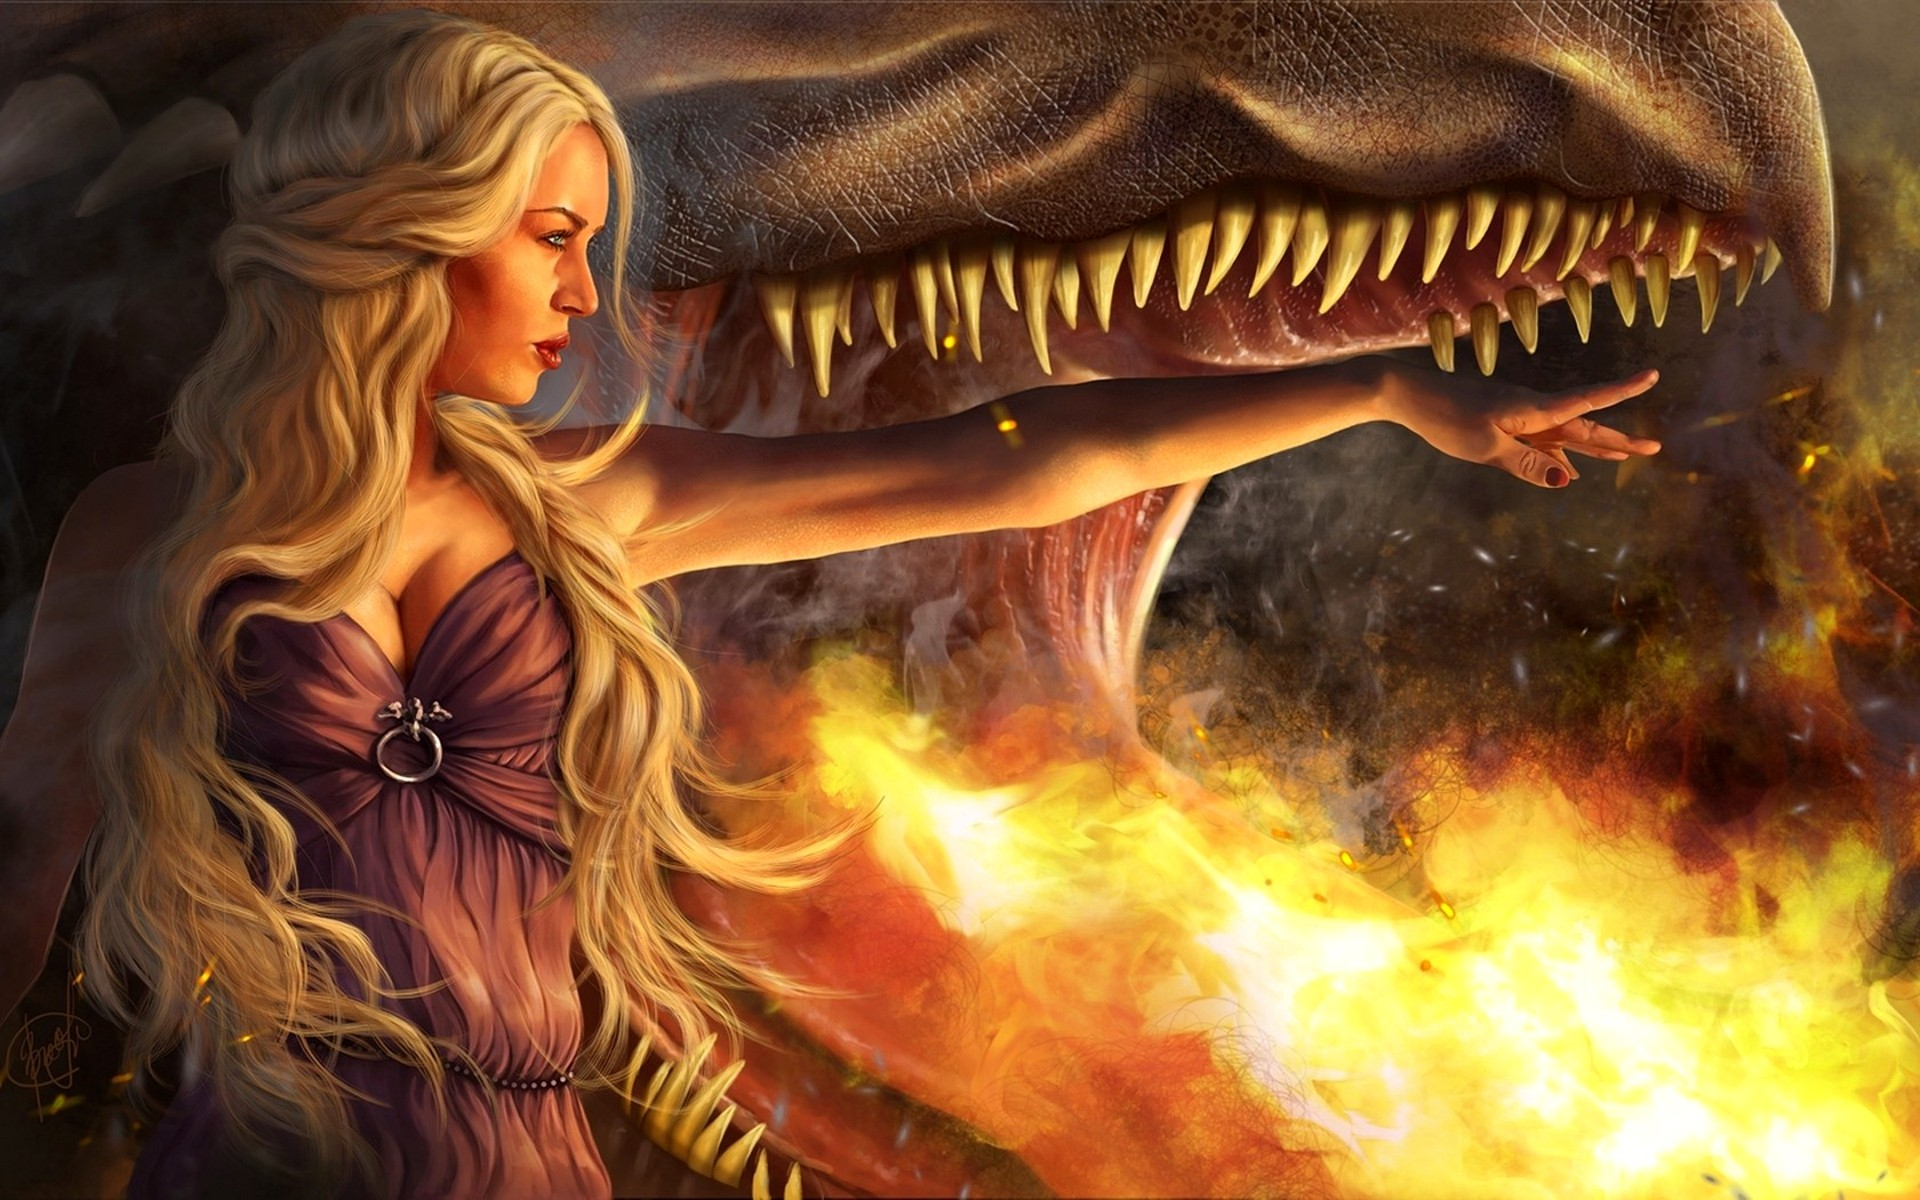 Game Of Thrones Dragon wallpapers55com   Best Wallpapers for PCs 1920x1200